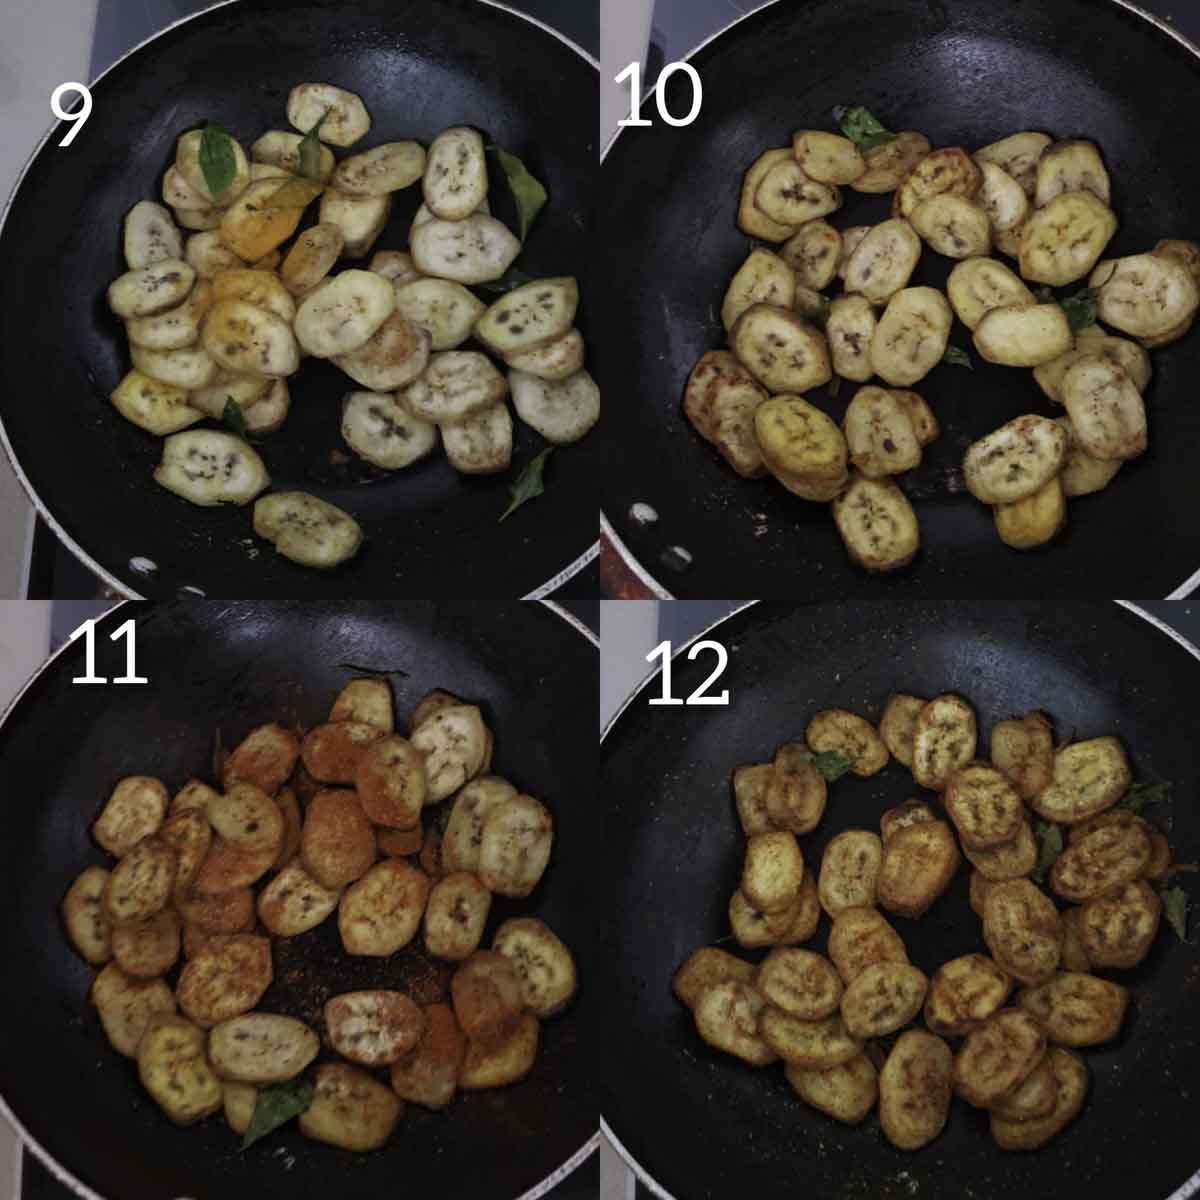 a collage of steps showing seasoning fried raw banana slices